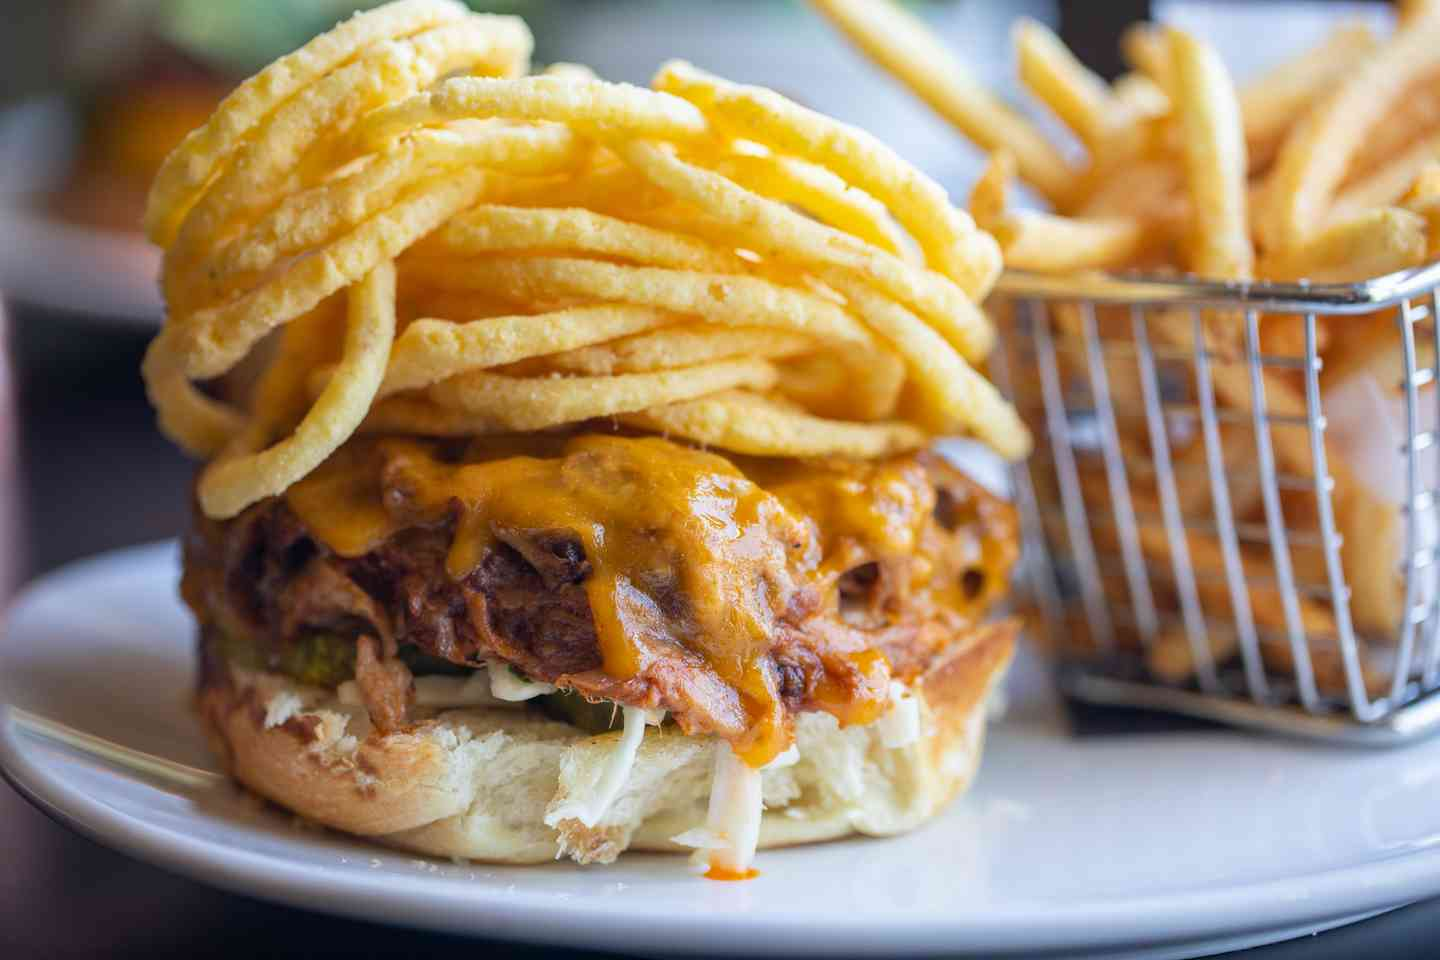 BBQ pulled pork sandwich and fries